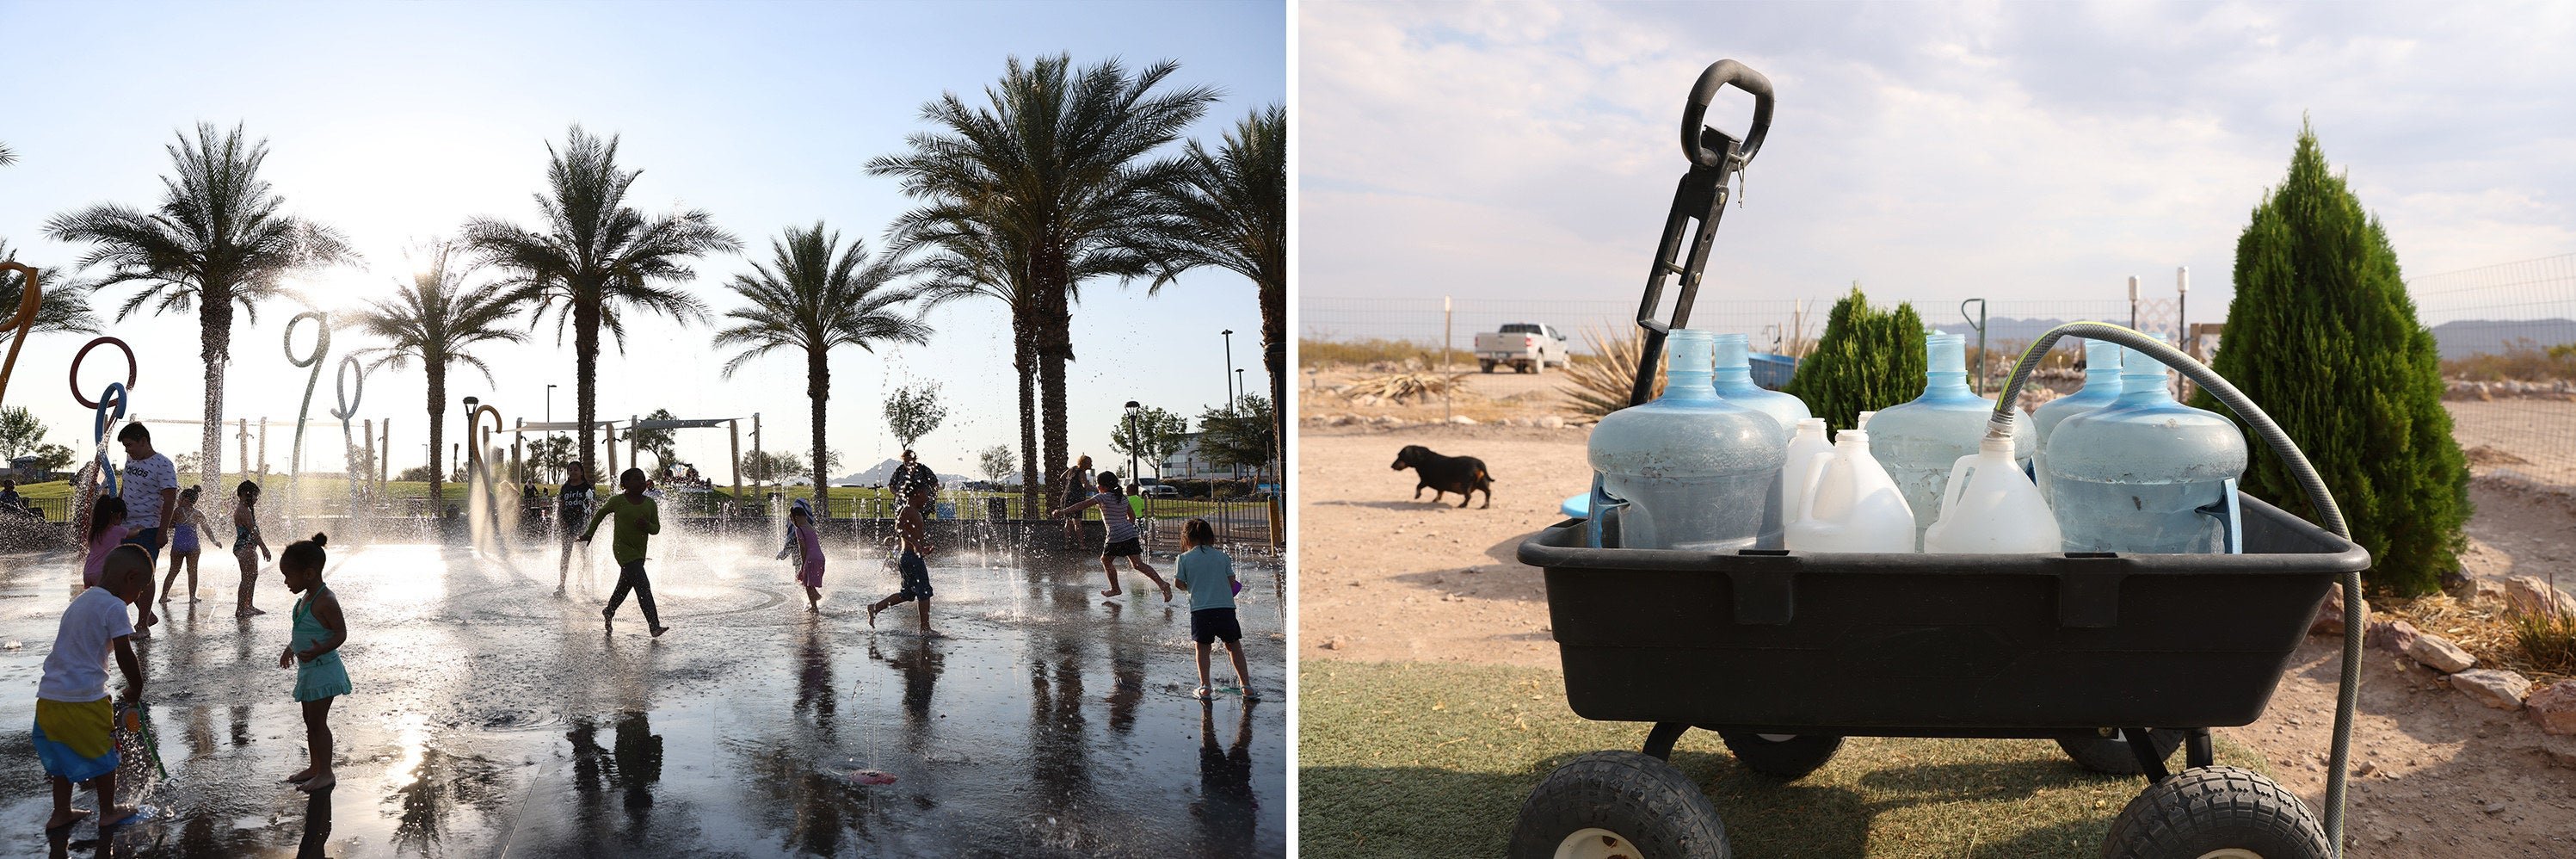 Side-by-side images show kids playing in a water park and water jugs sitting in a wagon